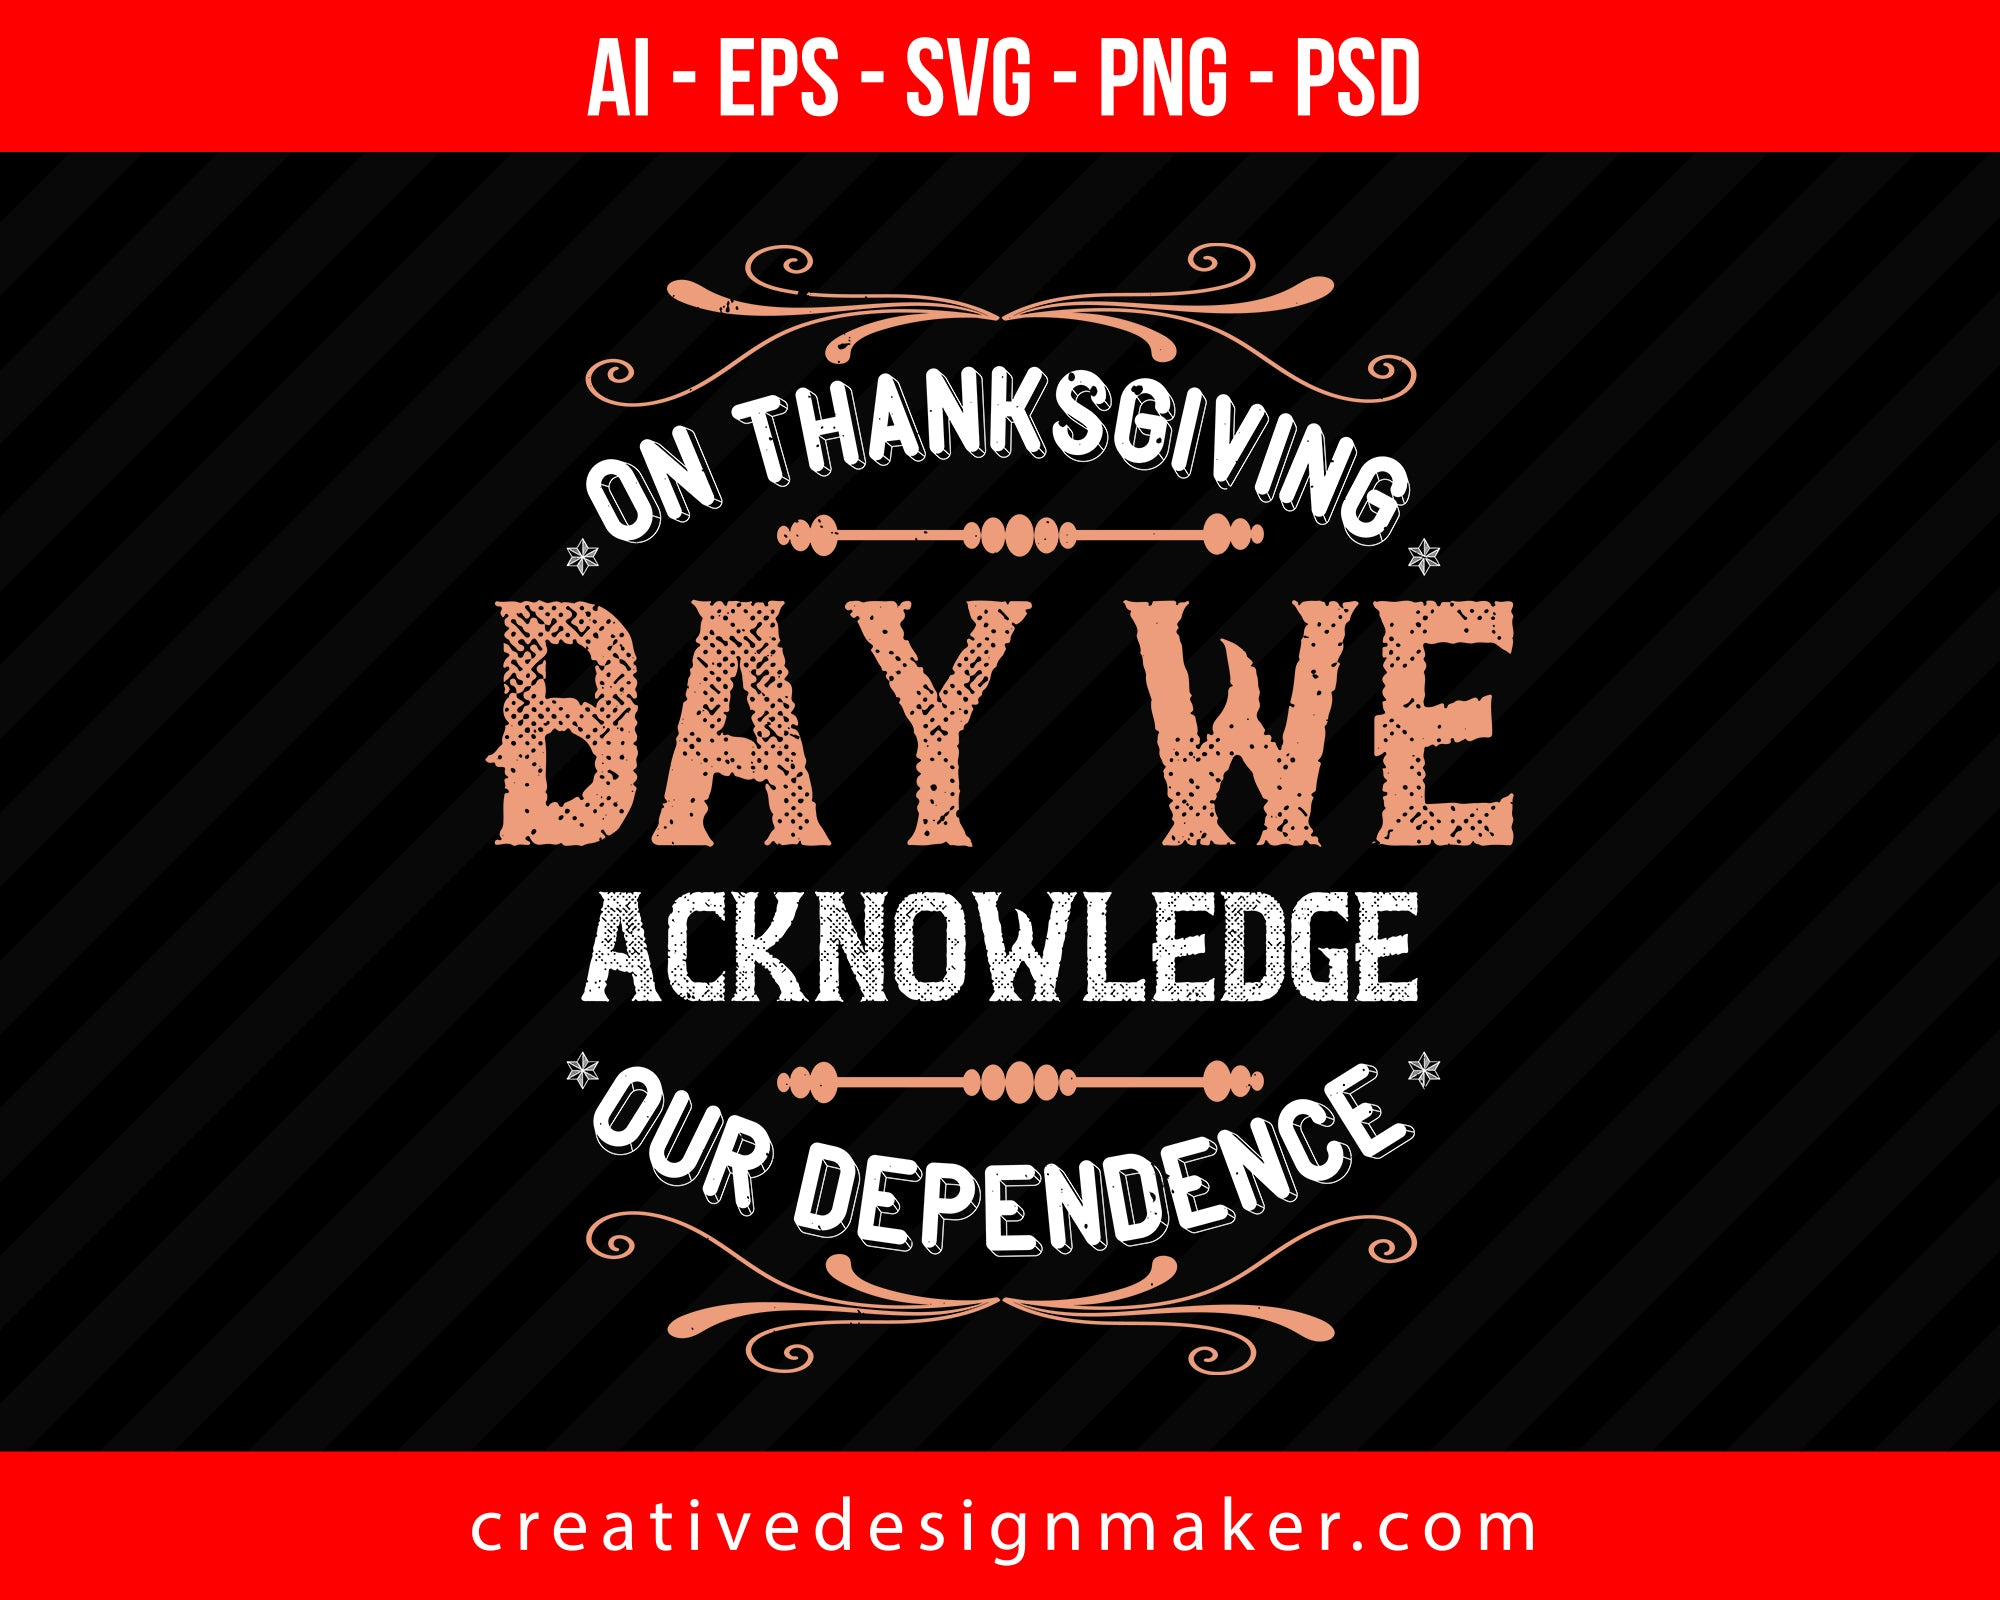 On Thanksgiving Day we acknowledge our dependence Print Ready Editable T-Shirt SVG Design!